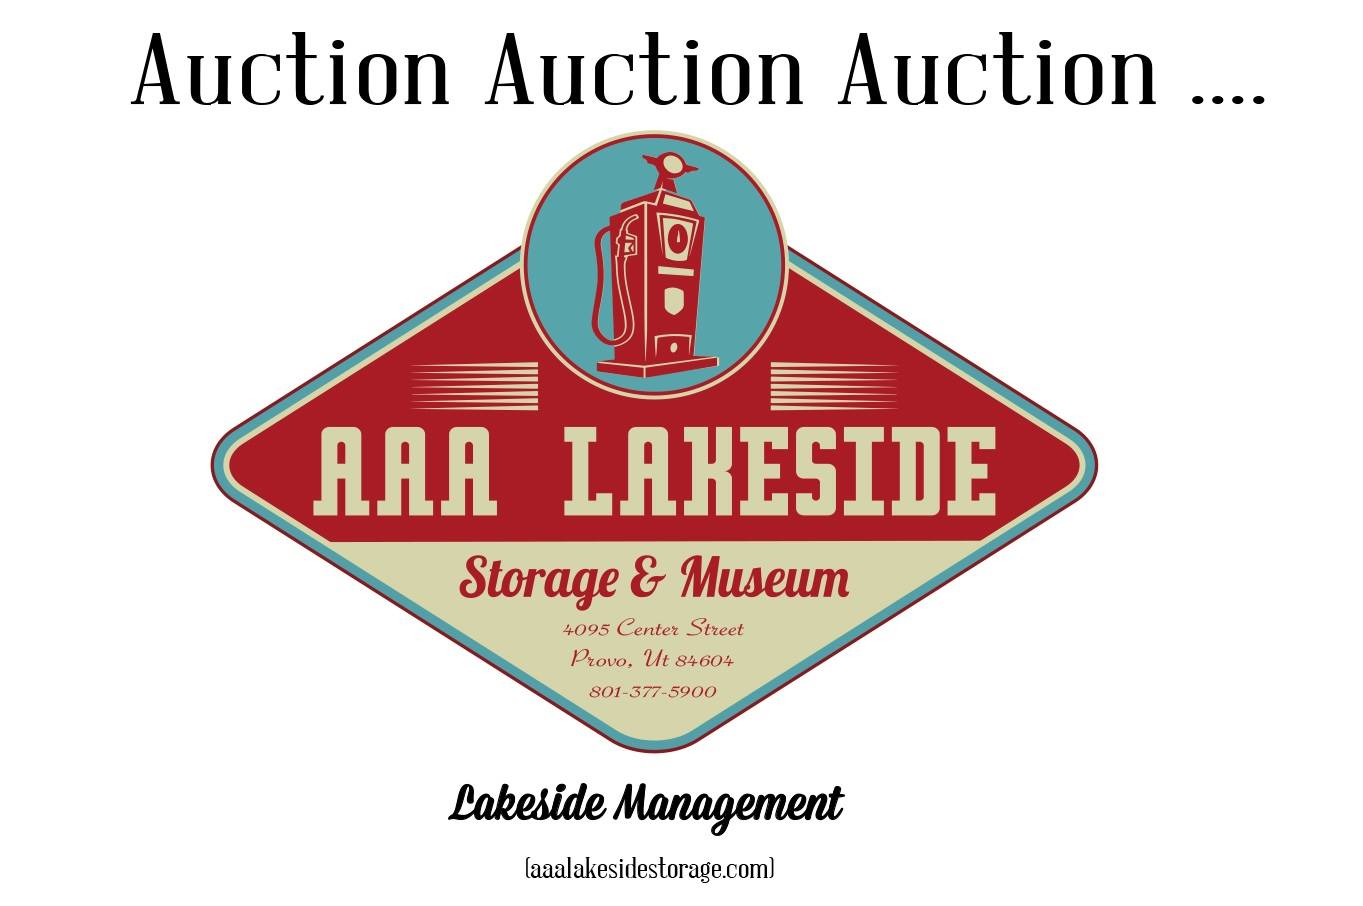 Auction Photo.jpg